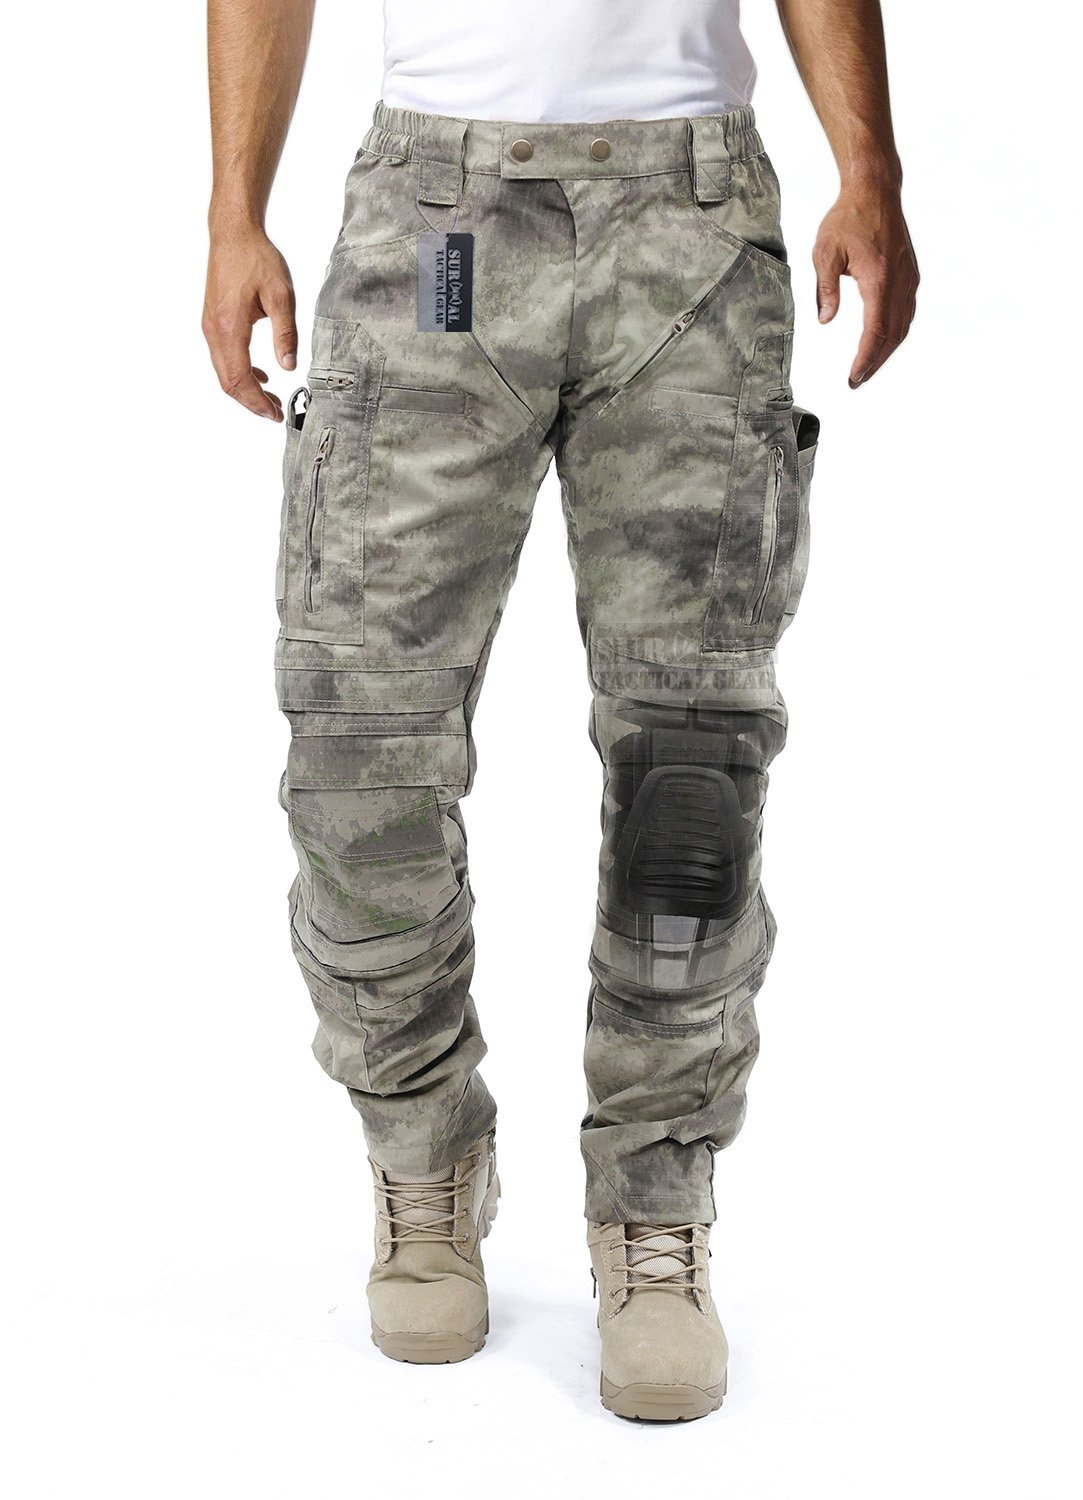 Survival Tactical Gear Men's Airsoft Wargame Tactical Pants with Knee Protection System & Air Circulation System (AU Camo, L) by Survival Tactical Gear